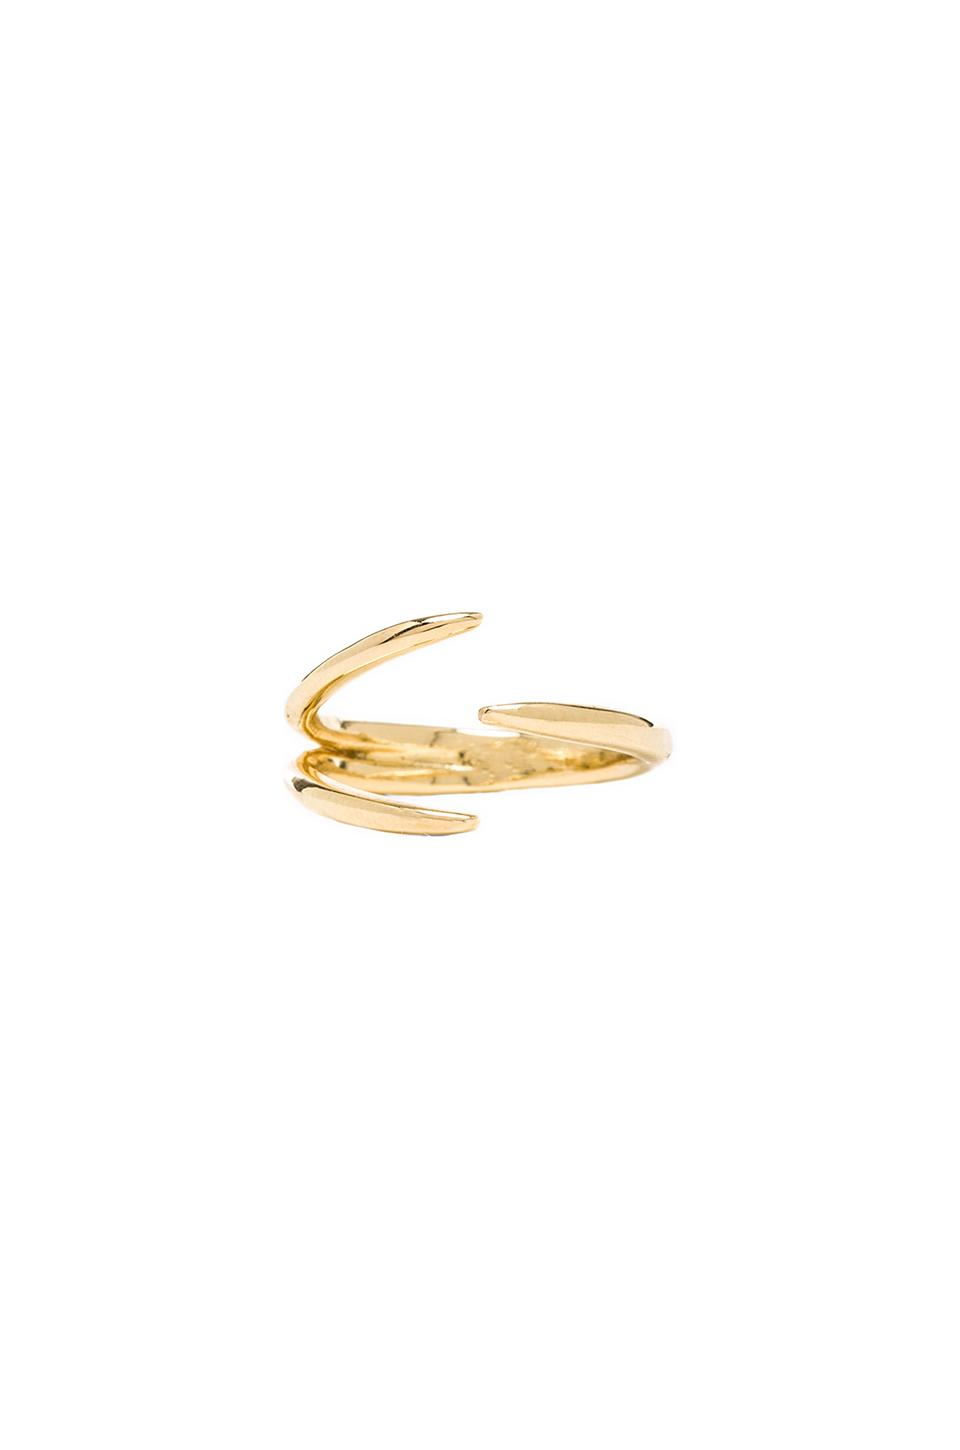 Jacquie Aiche Double Claw Ring in Vermeil Yellow Gold